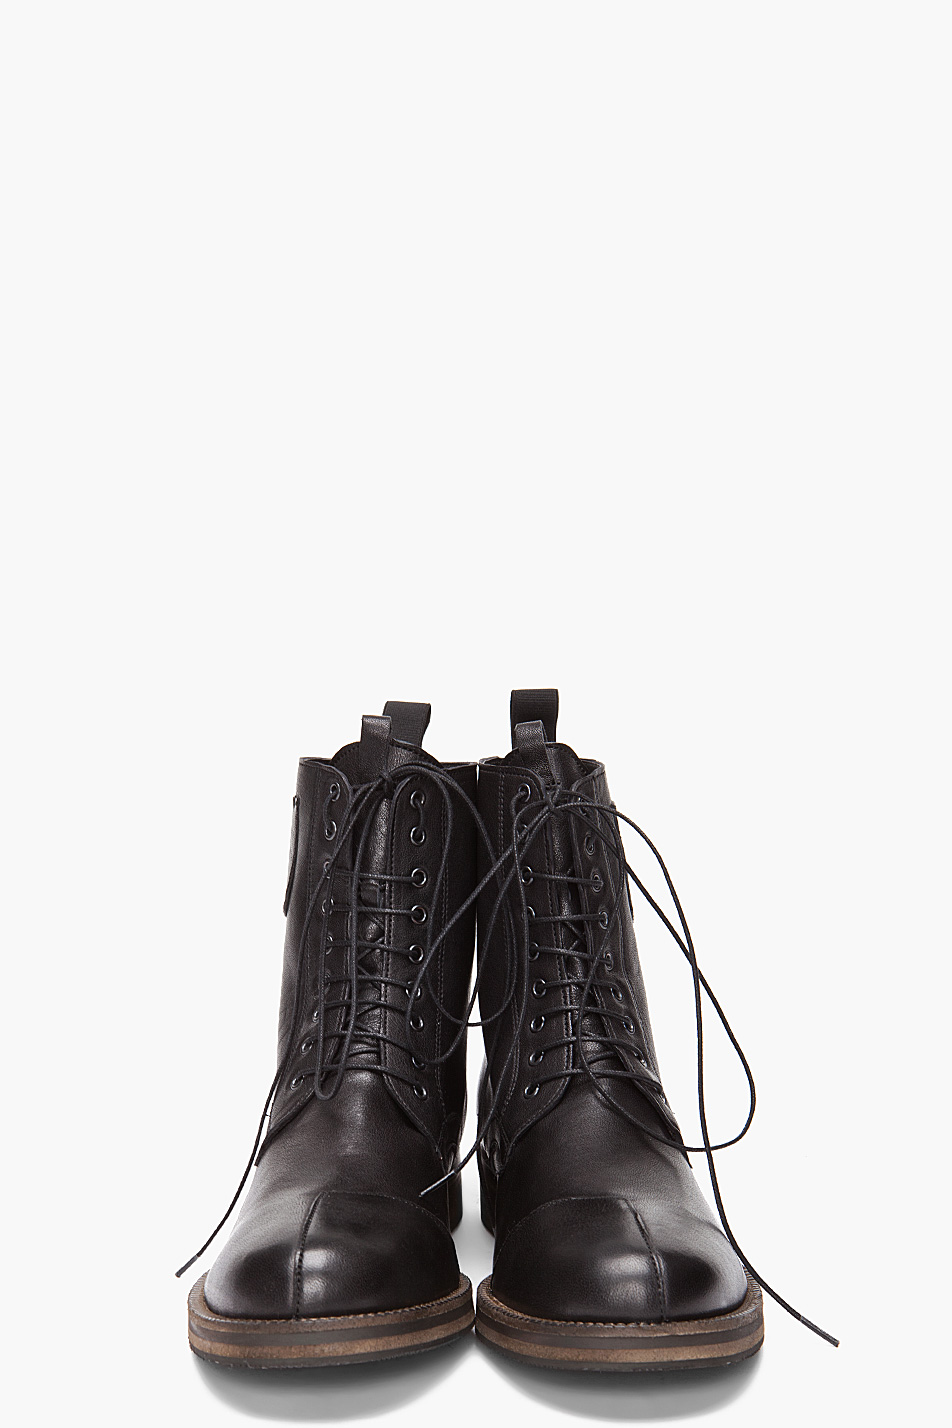 Lyst Fifth Avenue Shoe Repair Boondockers Boots In Black For Men